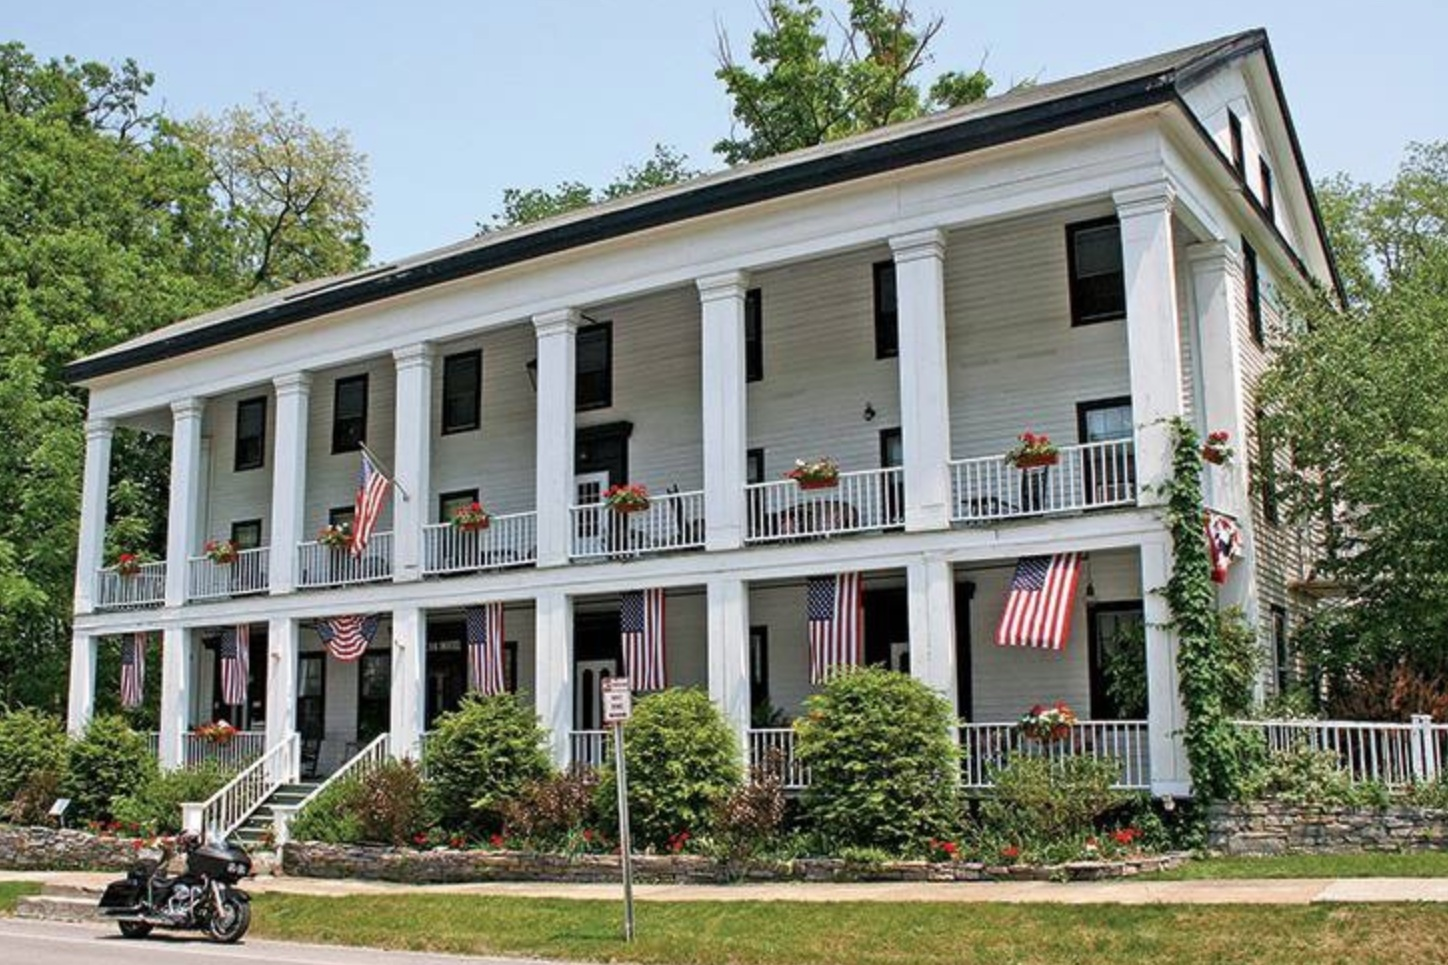 THE AMERICAN HOTEL  192 Main Street Sharon Springs, NY 13459   Click here to book a room   Distance: 30 mins / 24 miles  Capacity: 18 people